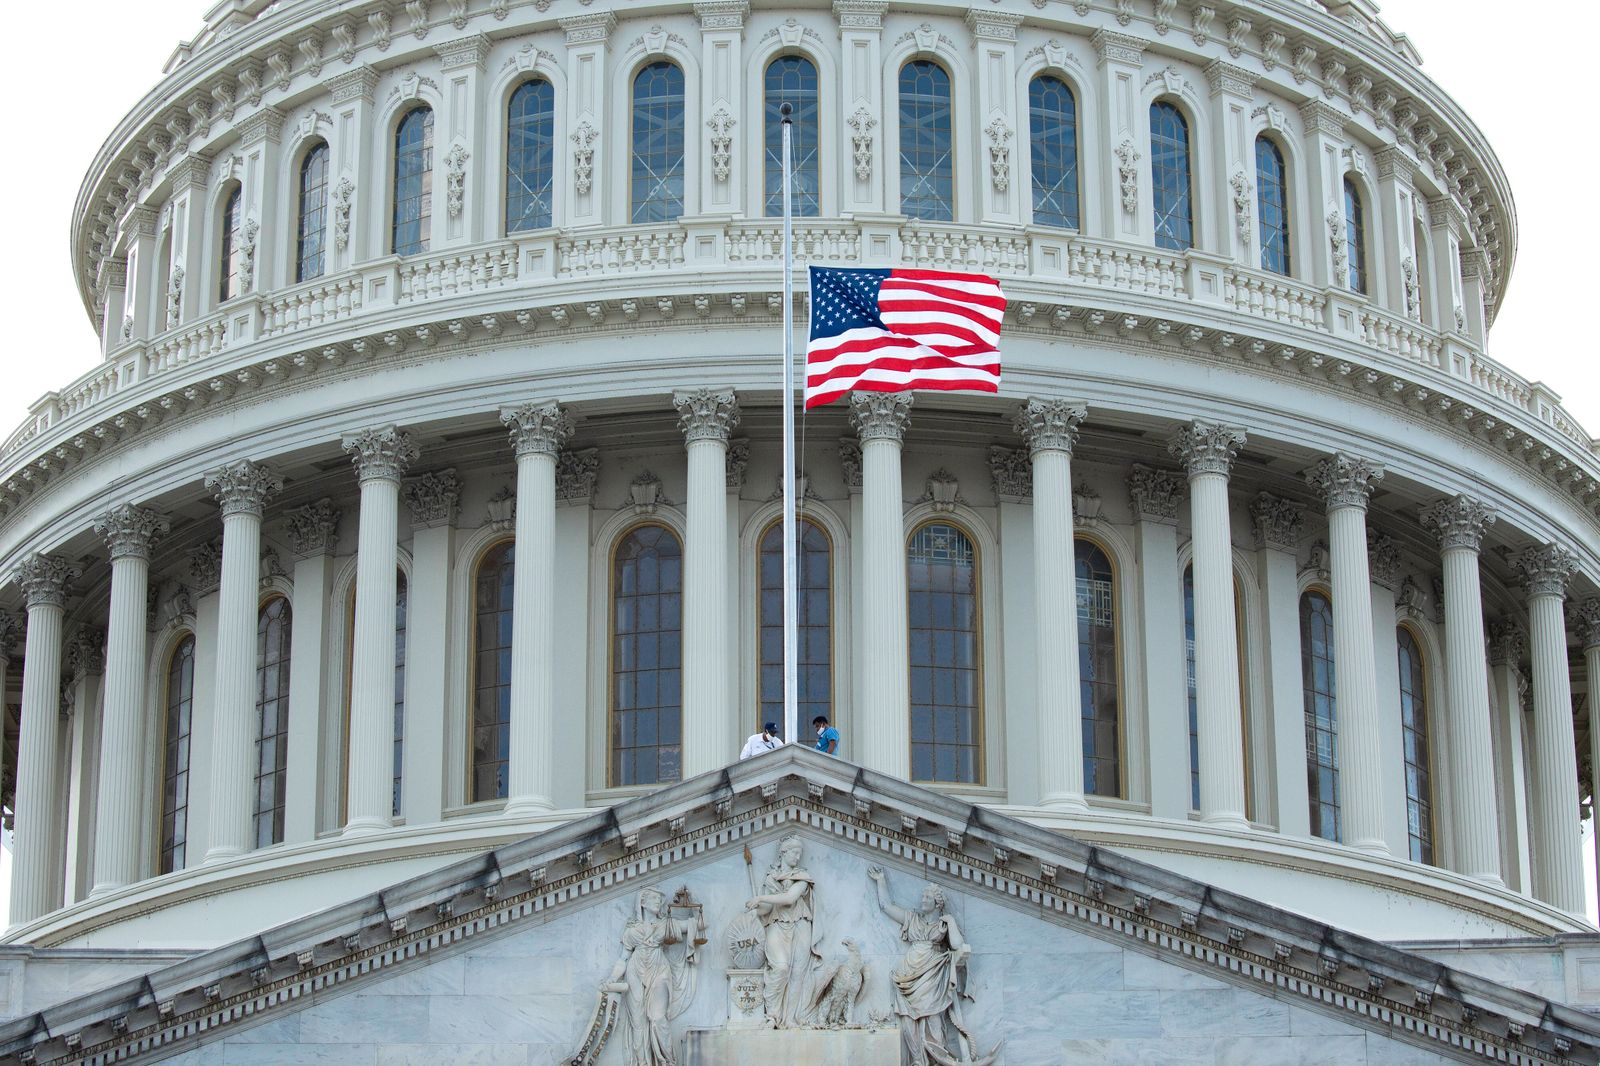 Workers replace the American flag on the U.S. Capitol in Washington D.C., U.S., on Monday, July 27, 2020 as Representat